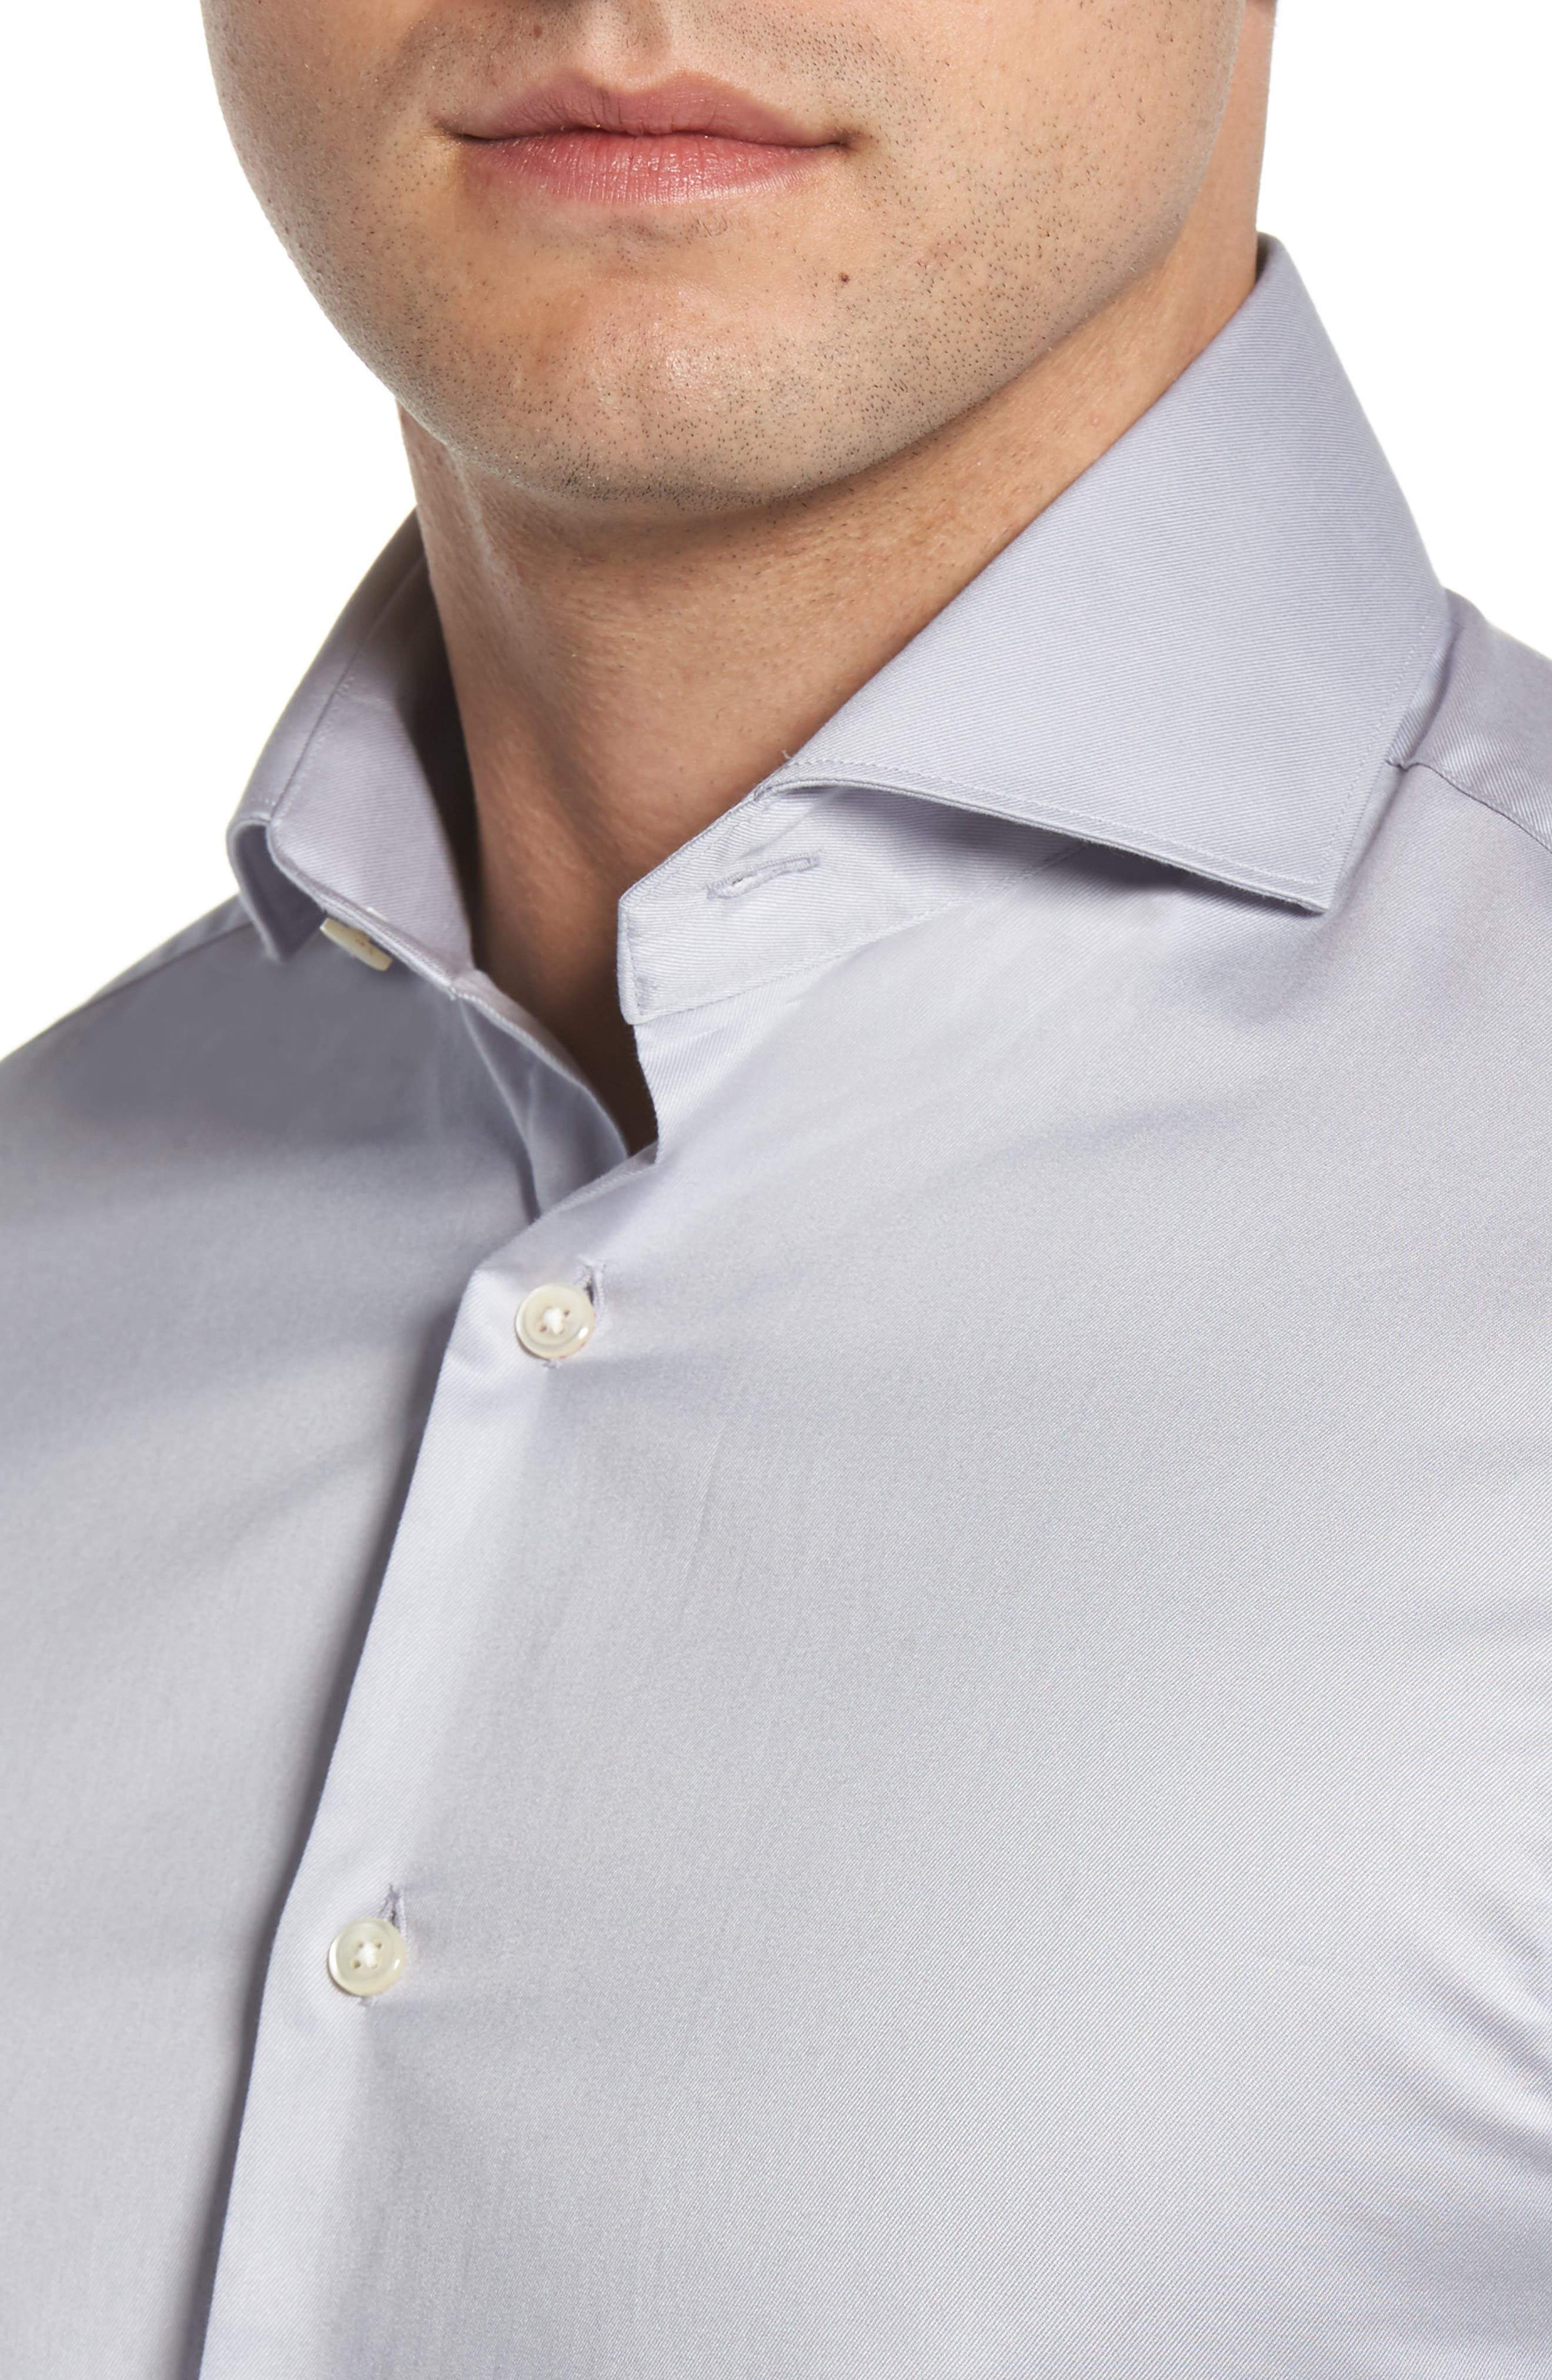 Regular Fit Solid Dress Shirt,                             Alternate thumbnail 2, color,                             SILVER